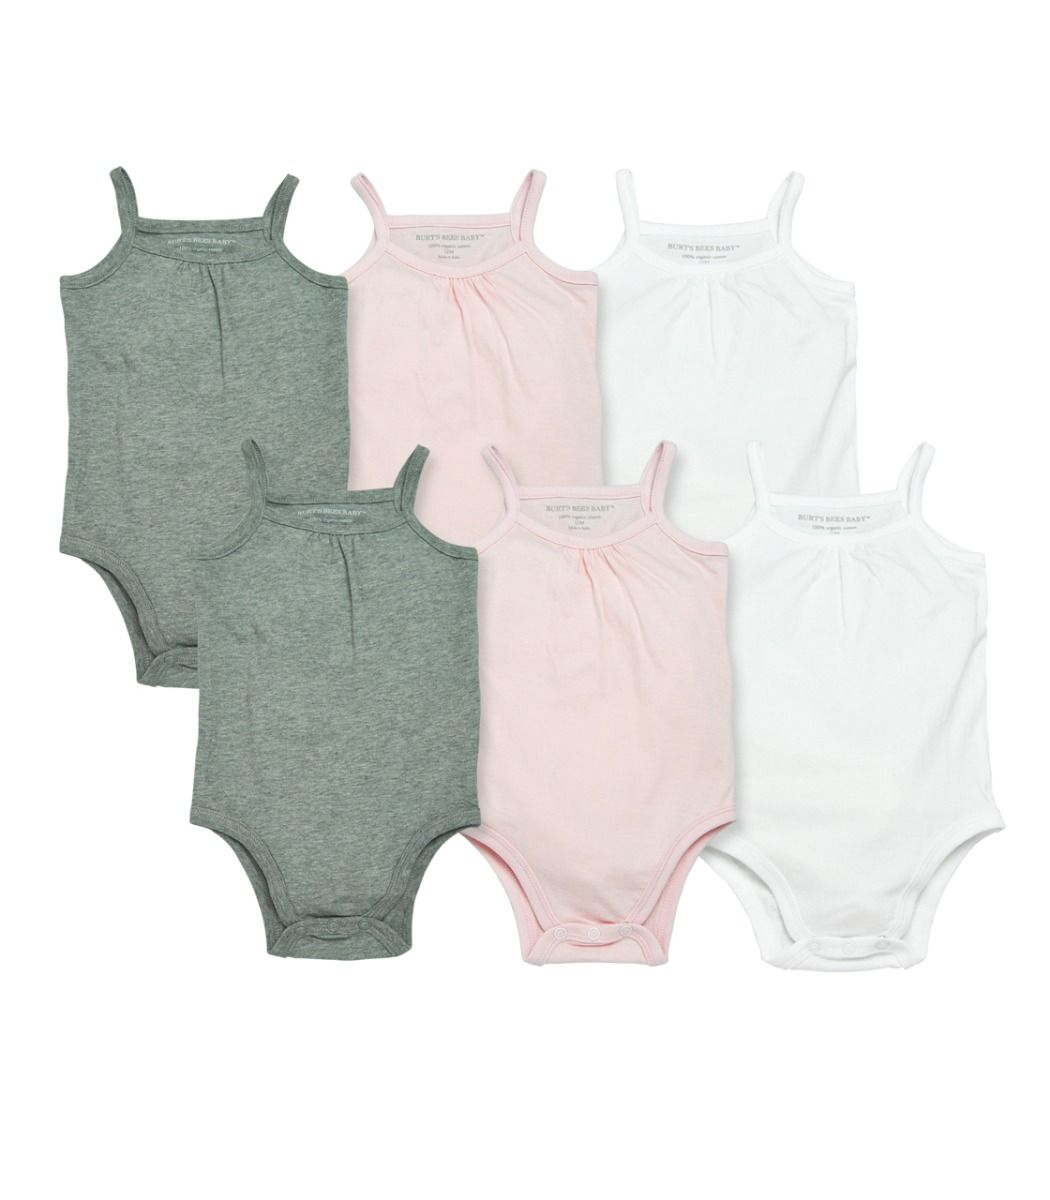 Burt's Bees Set of 6 Solid Camisole Bodysuits - Multi - Bloom Kids Collection - Burt's Bees